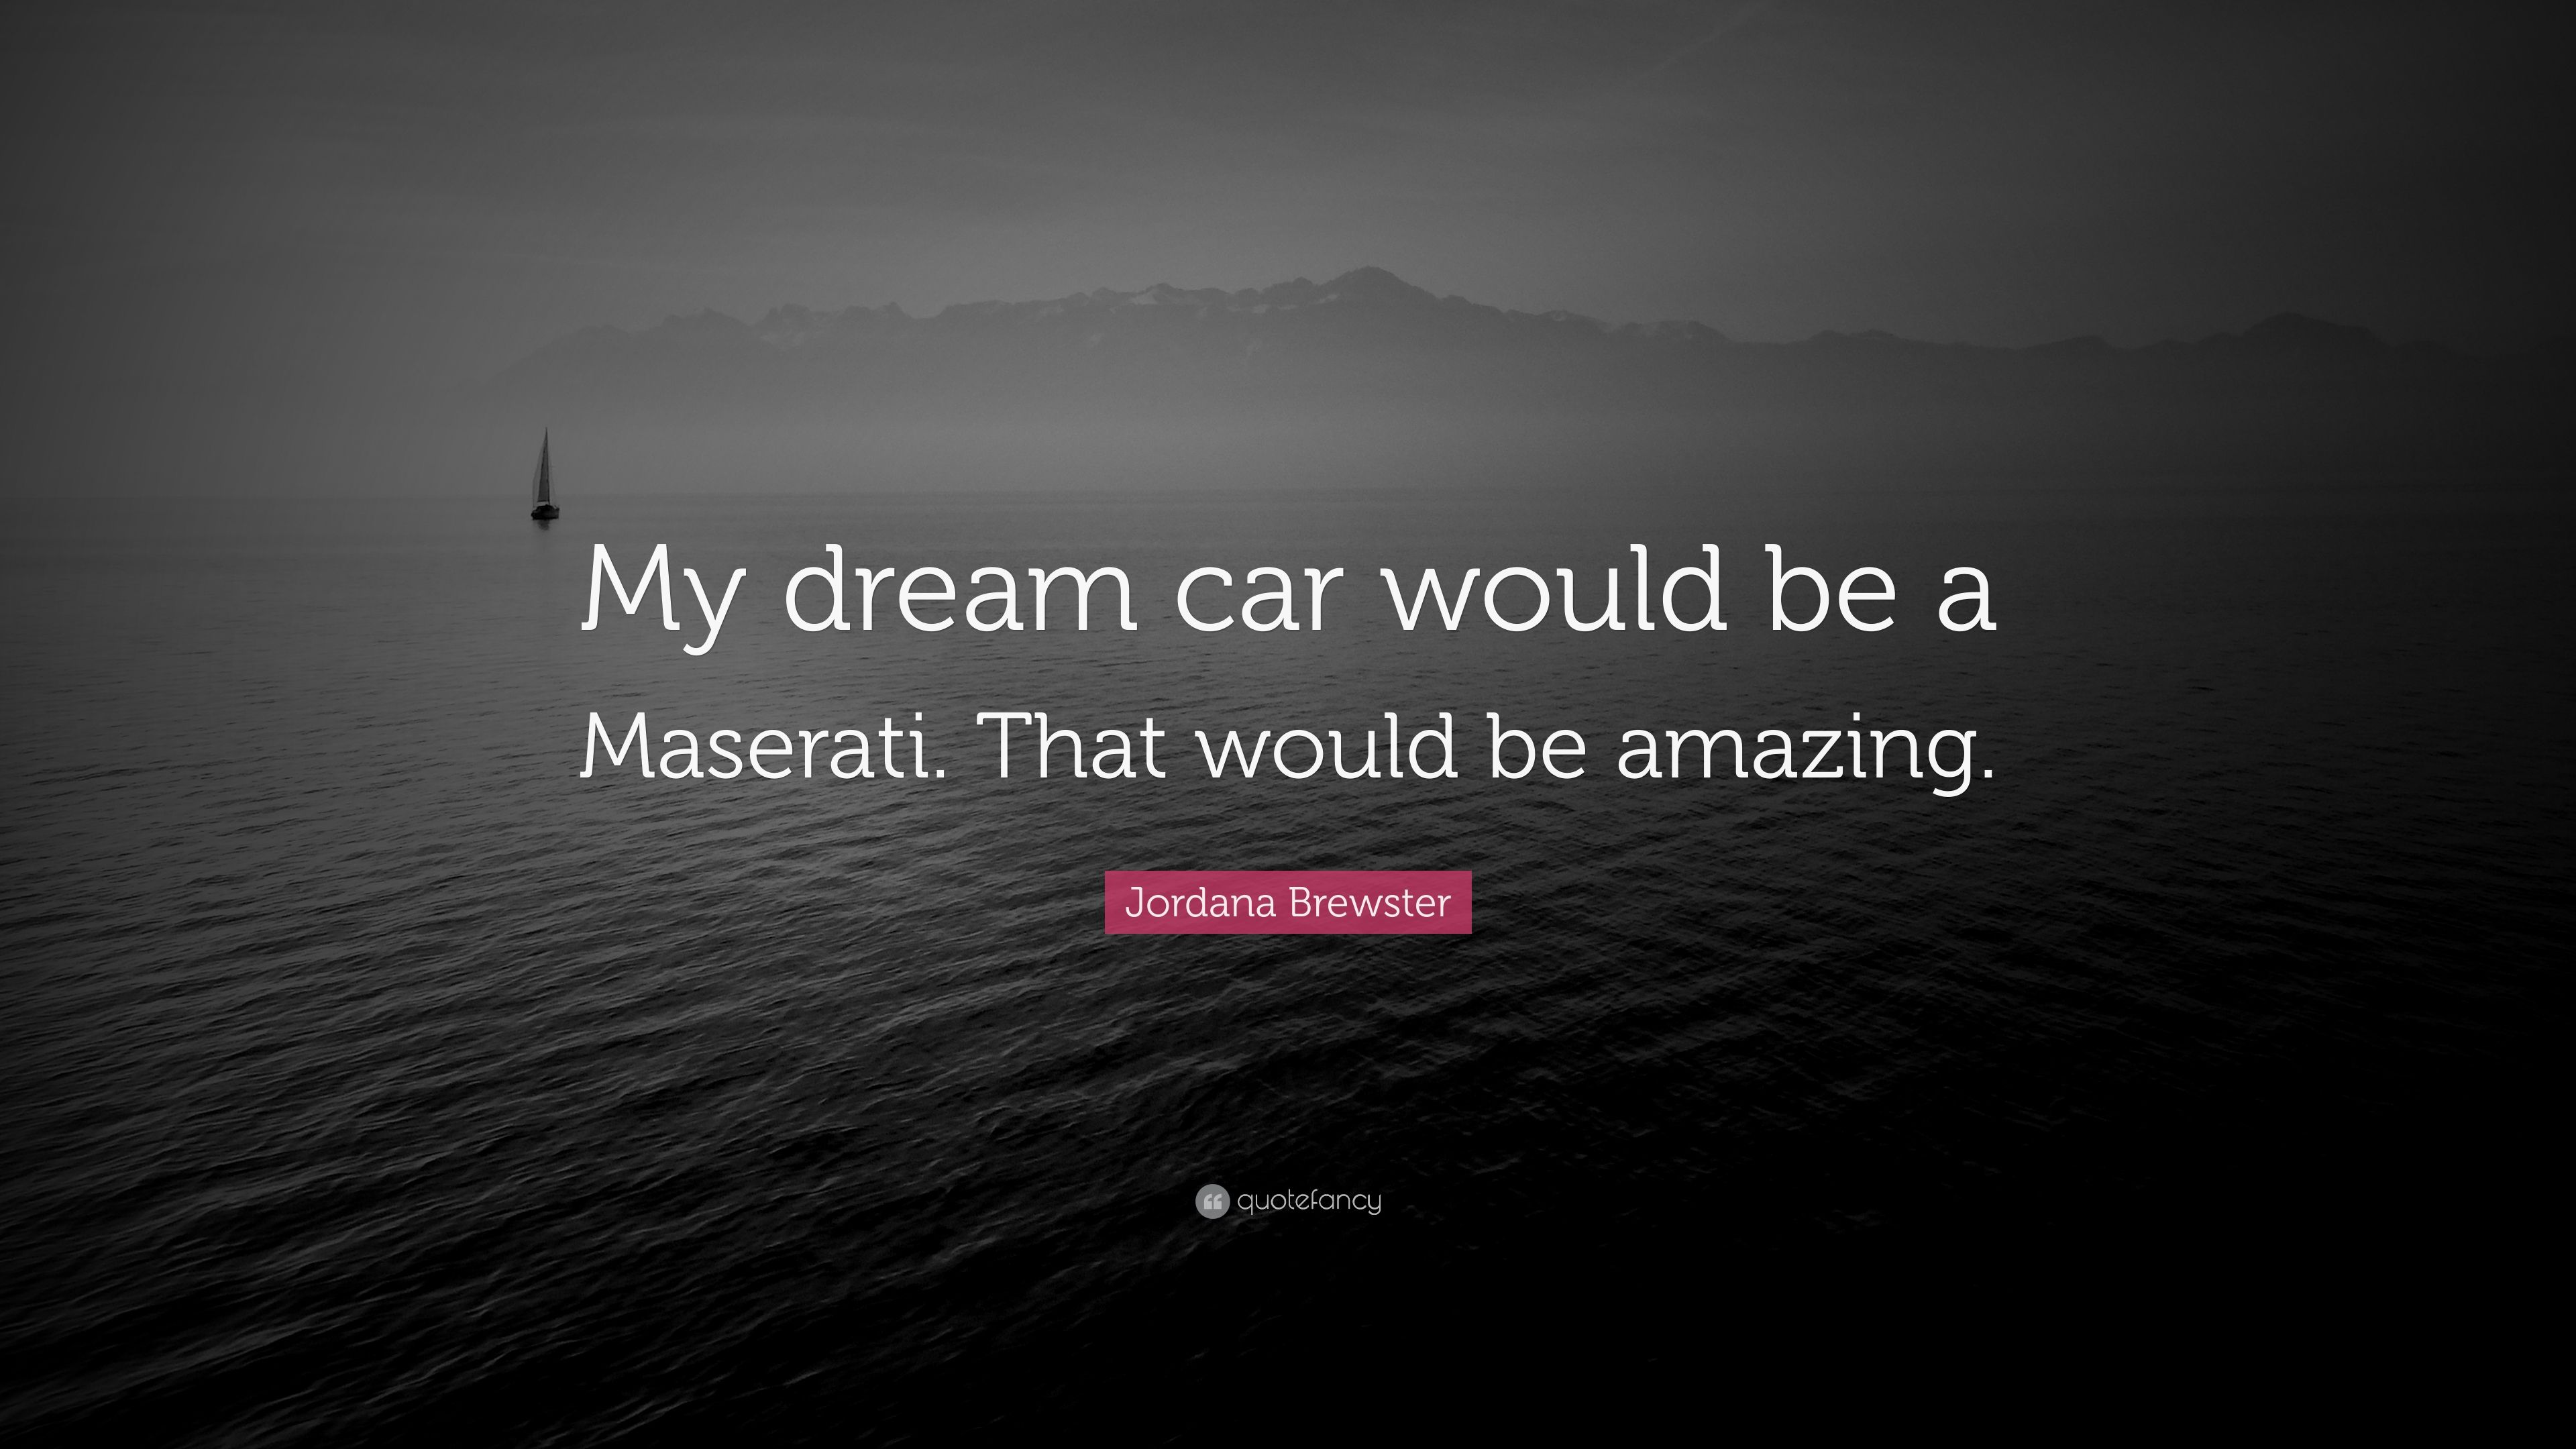 Jordana Brewster Quote My Dream Car Would Be A Maserati That Would Be Amazing 7 Wallpapers Quotefancy